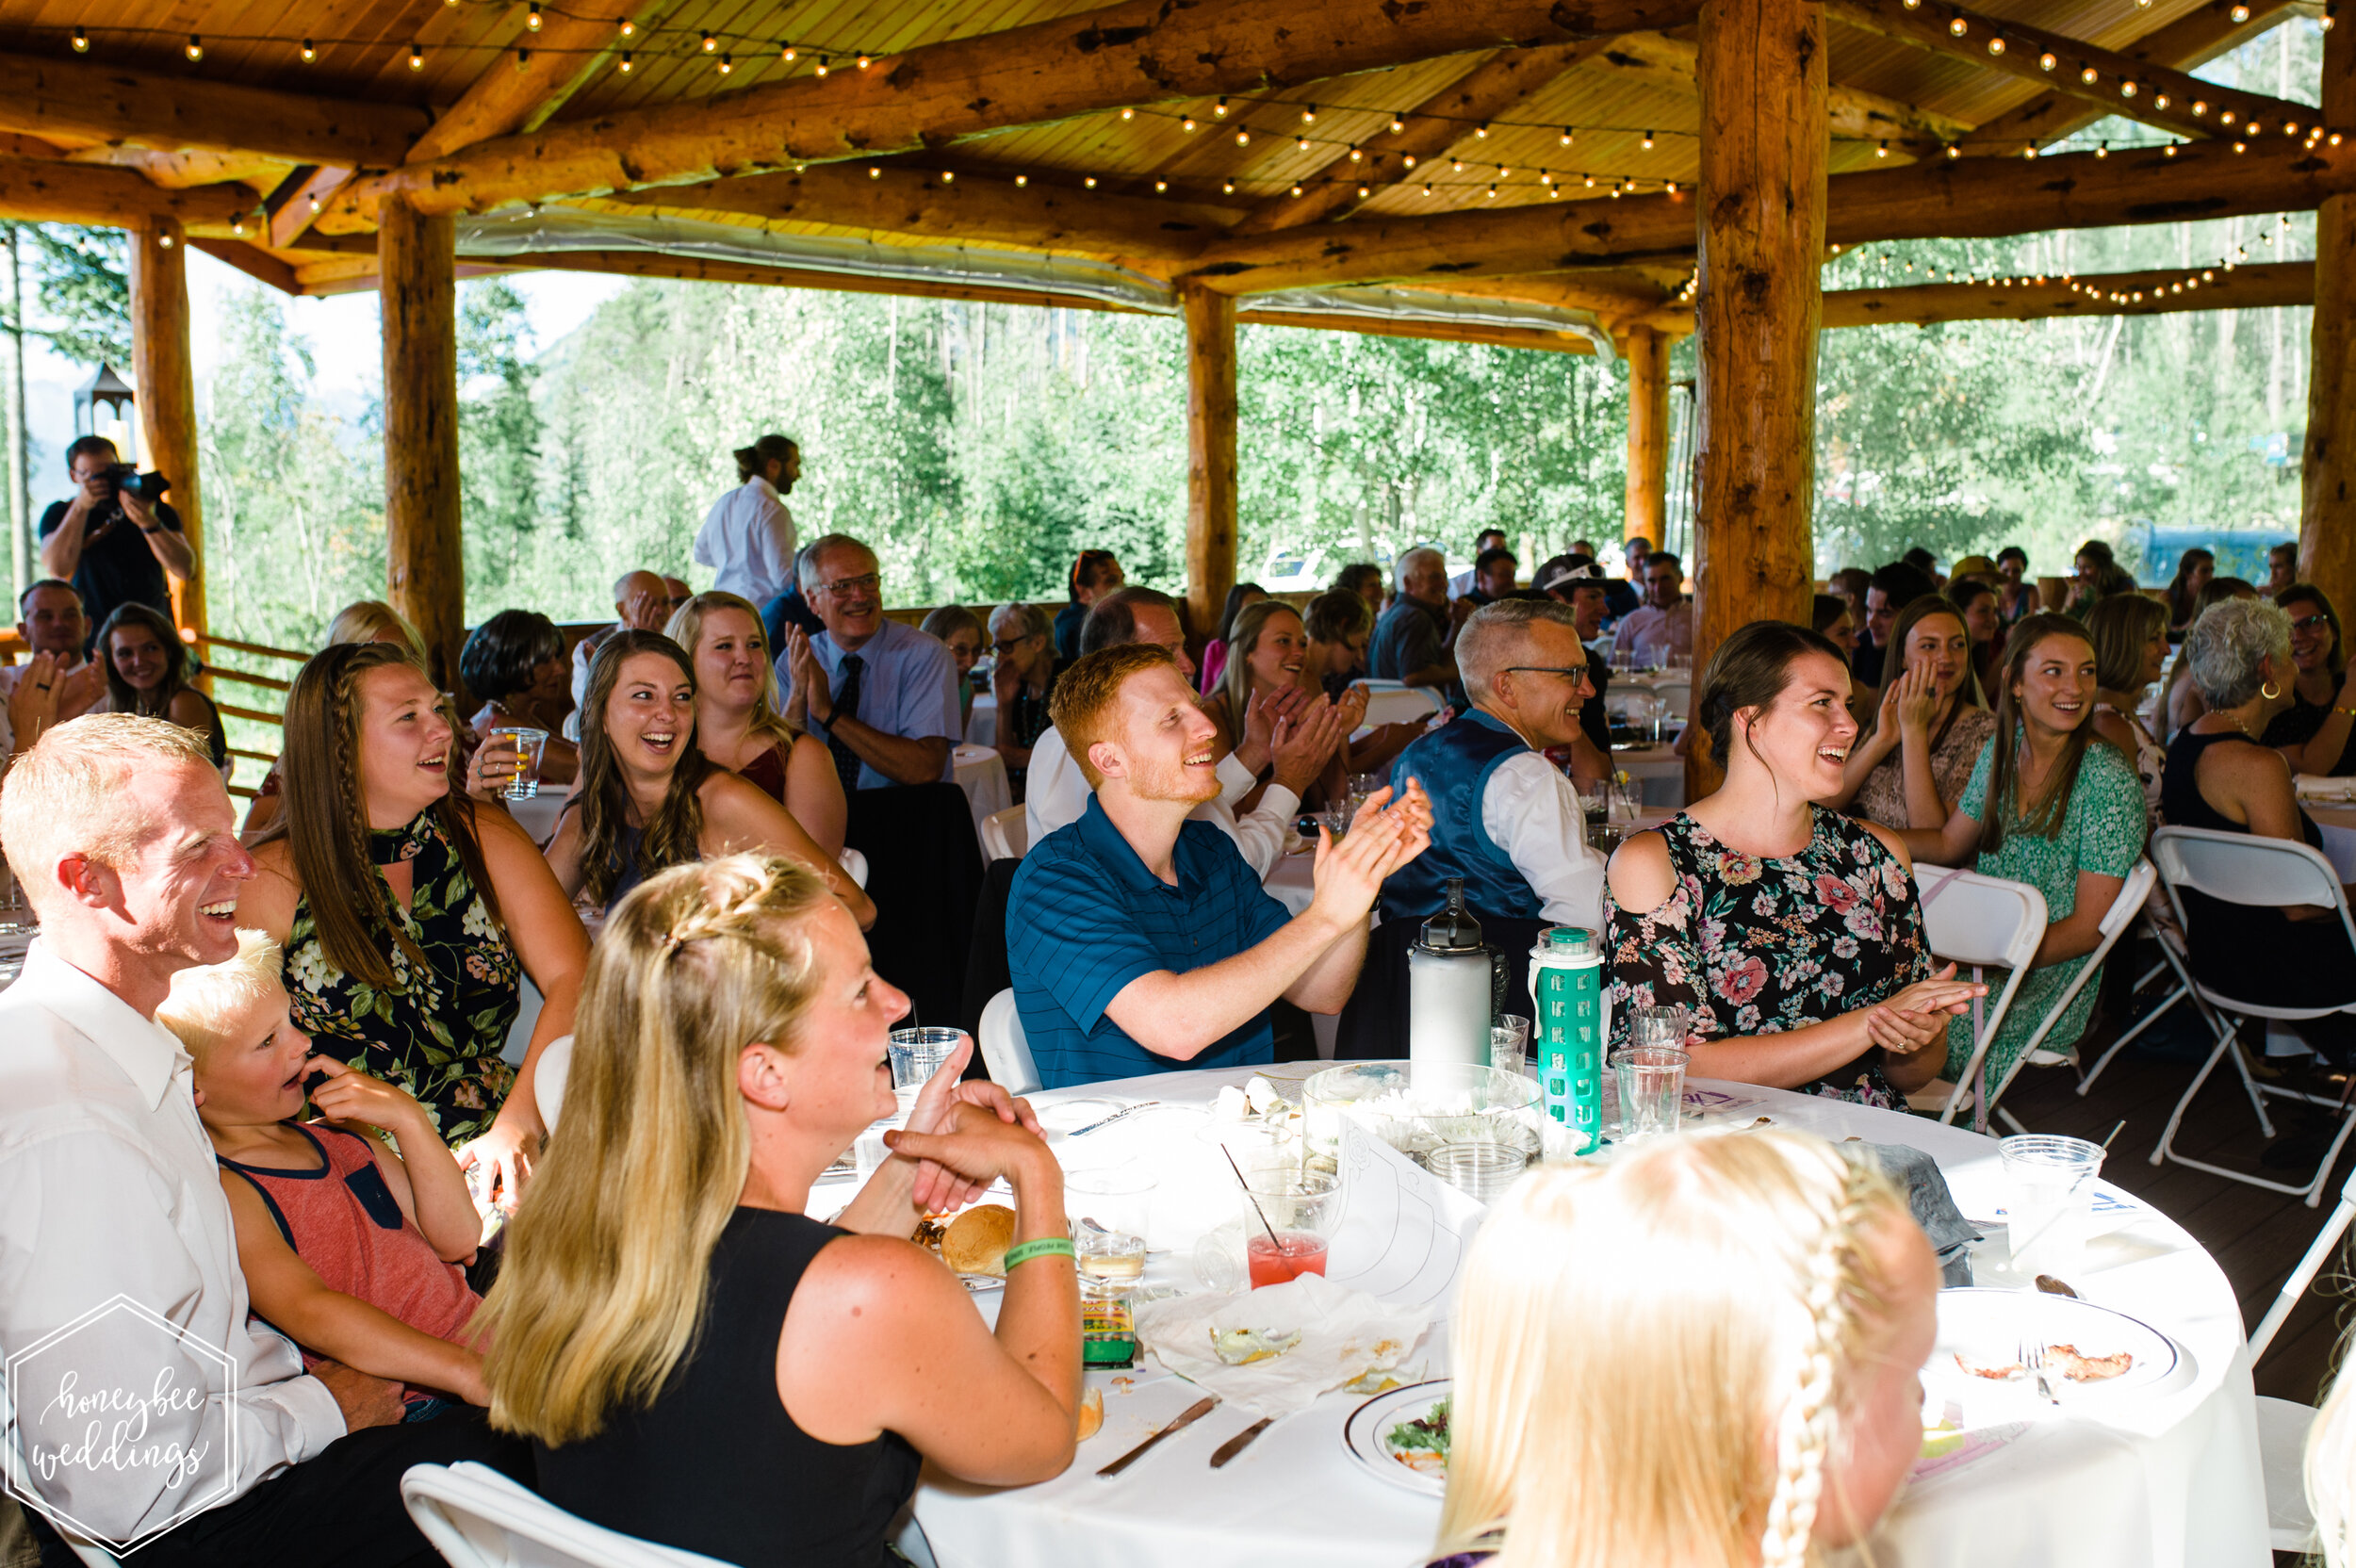 119Glacier National Park Wedding_Glacier Outdoor Center_Honeybee Weddings_Anna & Seth_July 21, 2019-2288.jpg